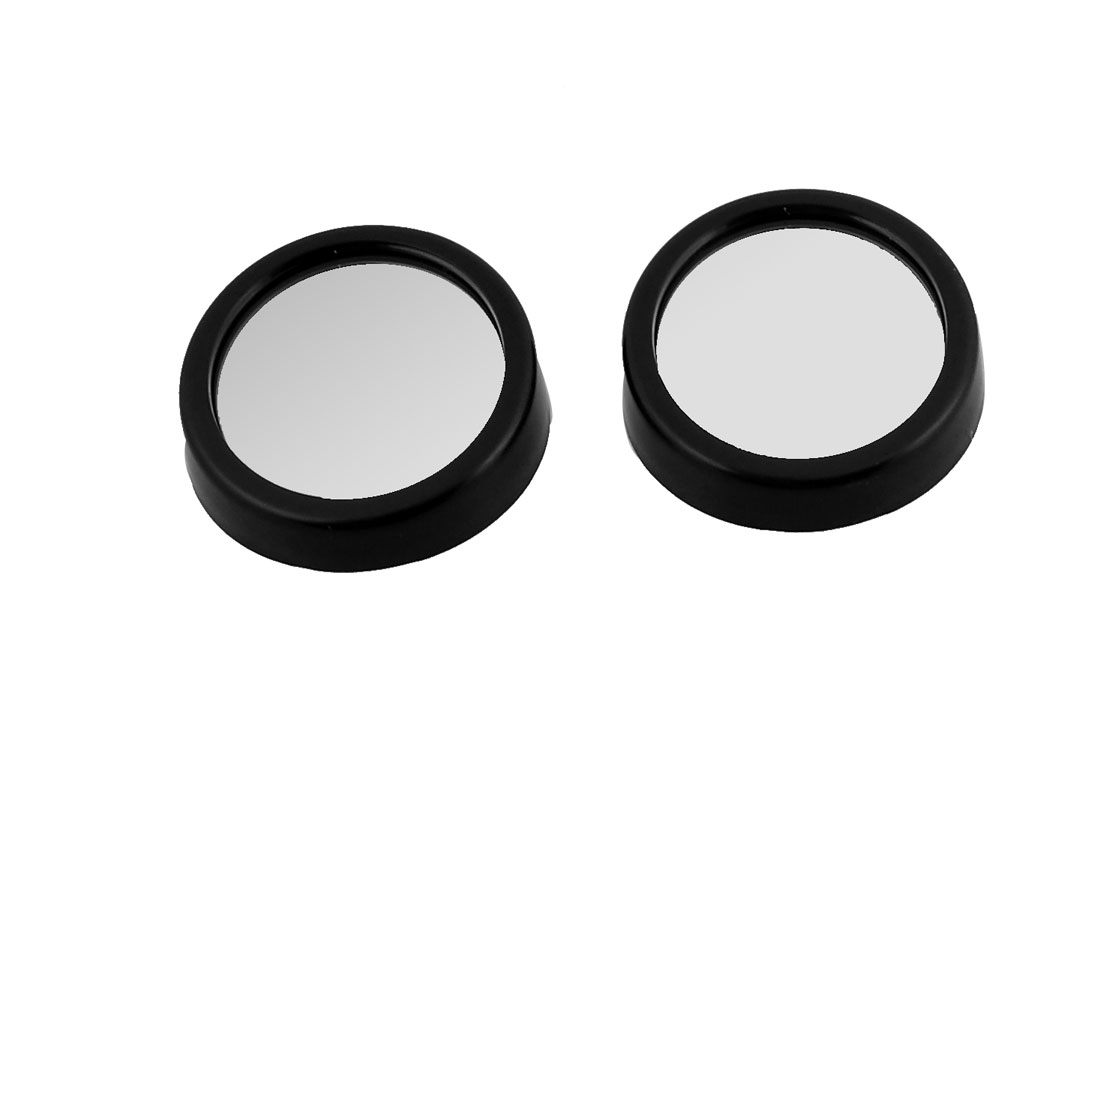 Auto Black Round Adjustable Angle 45mm Convex Blind Spot Mirror 2 Pcs